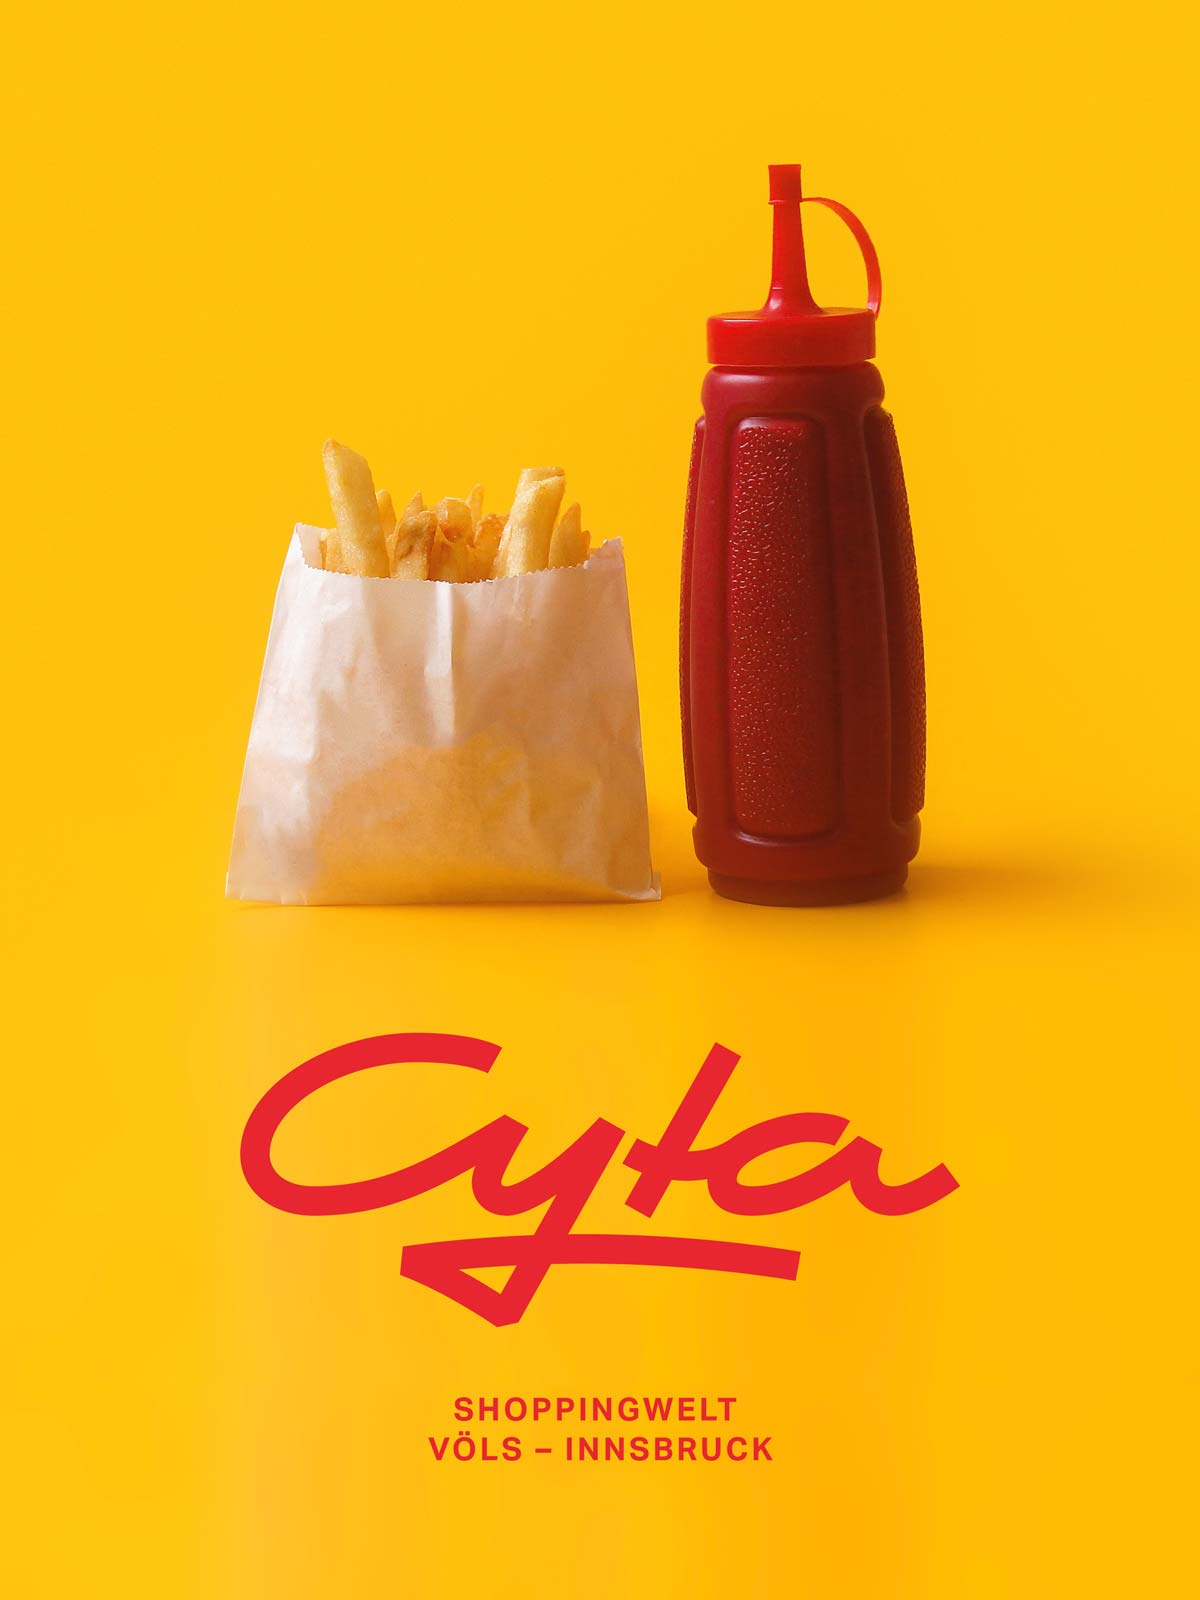 Cyta Shoppingwelt logo on photography of french fries and ketchup by Miguel Andrade from Unsplash